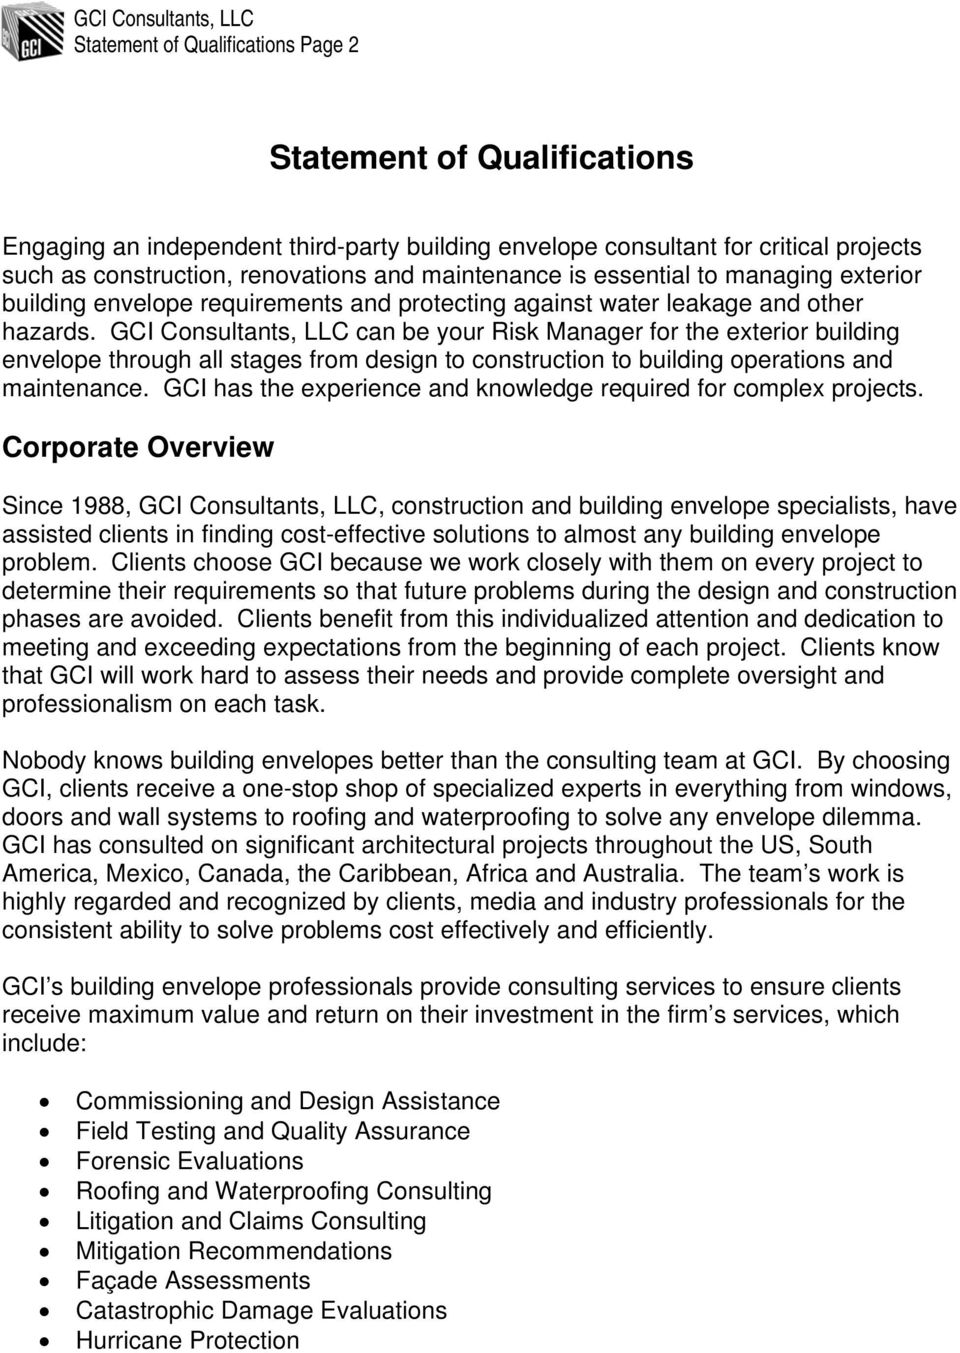 GCI Consultants, LLC can be your Risk Manager for the exterior building envelope through all stages from design to construction to building operations and maintenance.